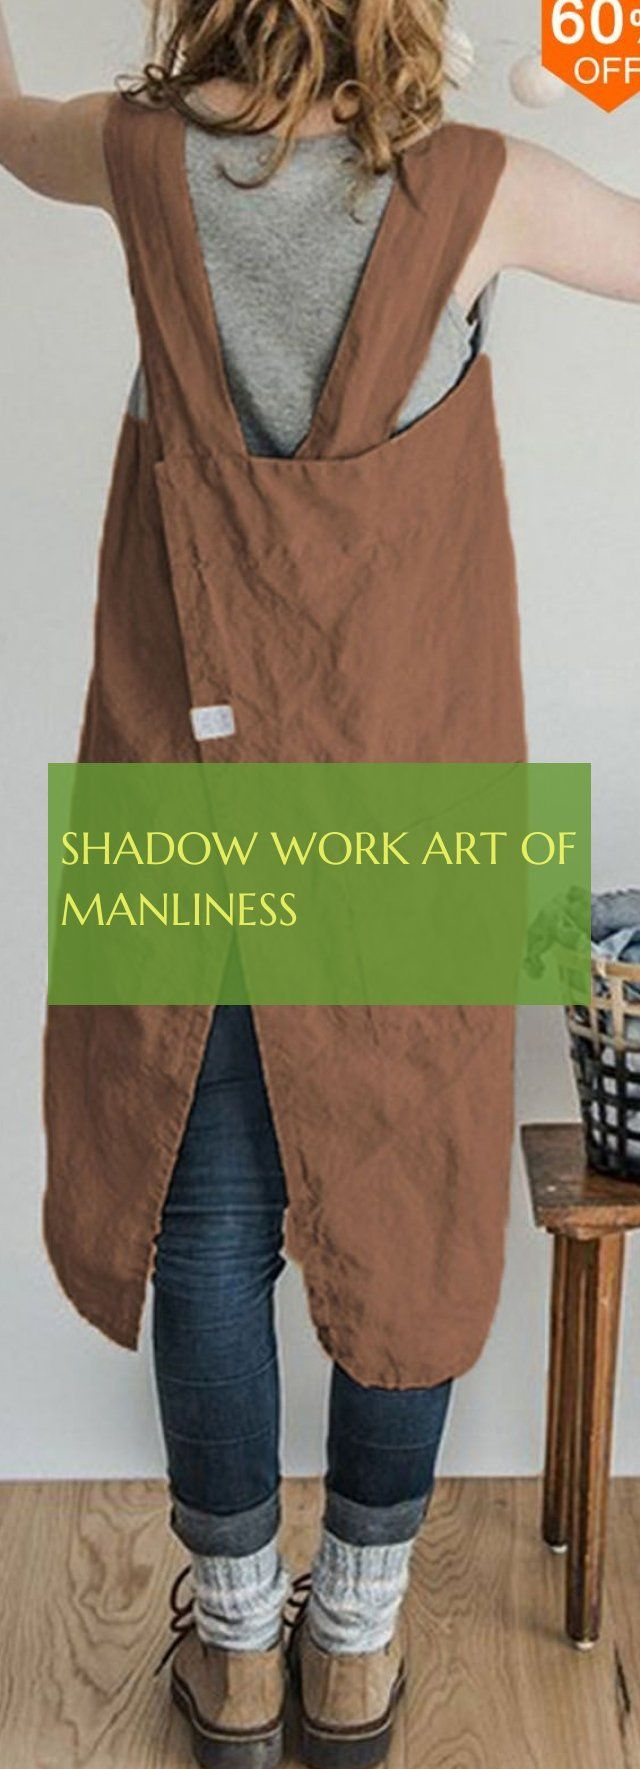 shadow work art of manliness